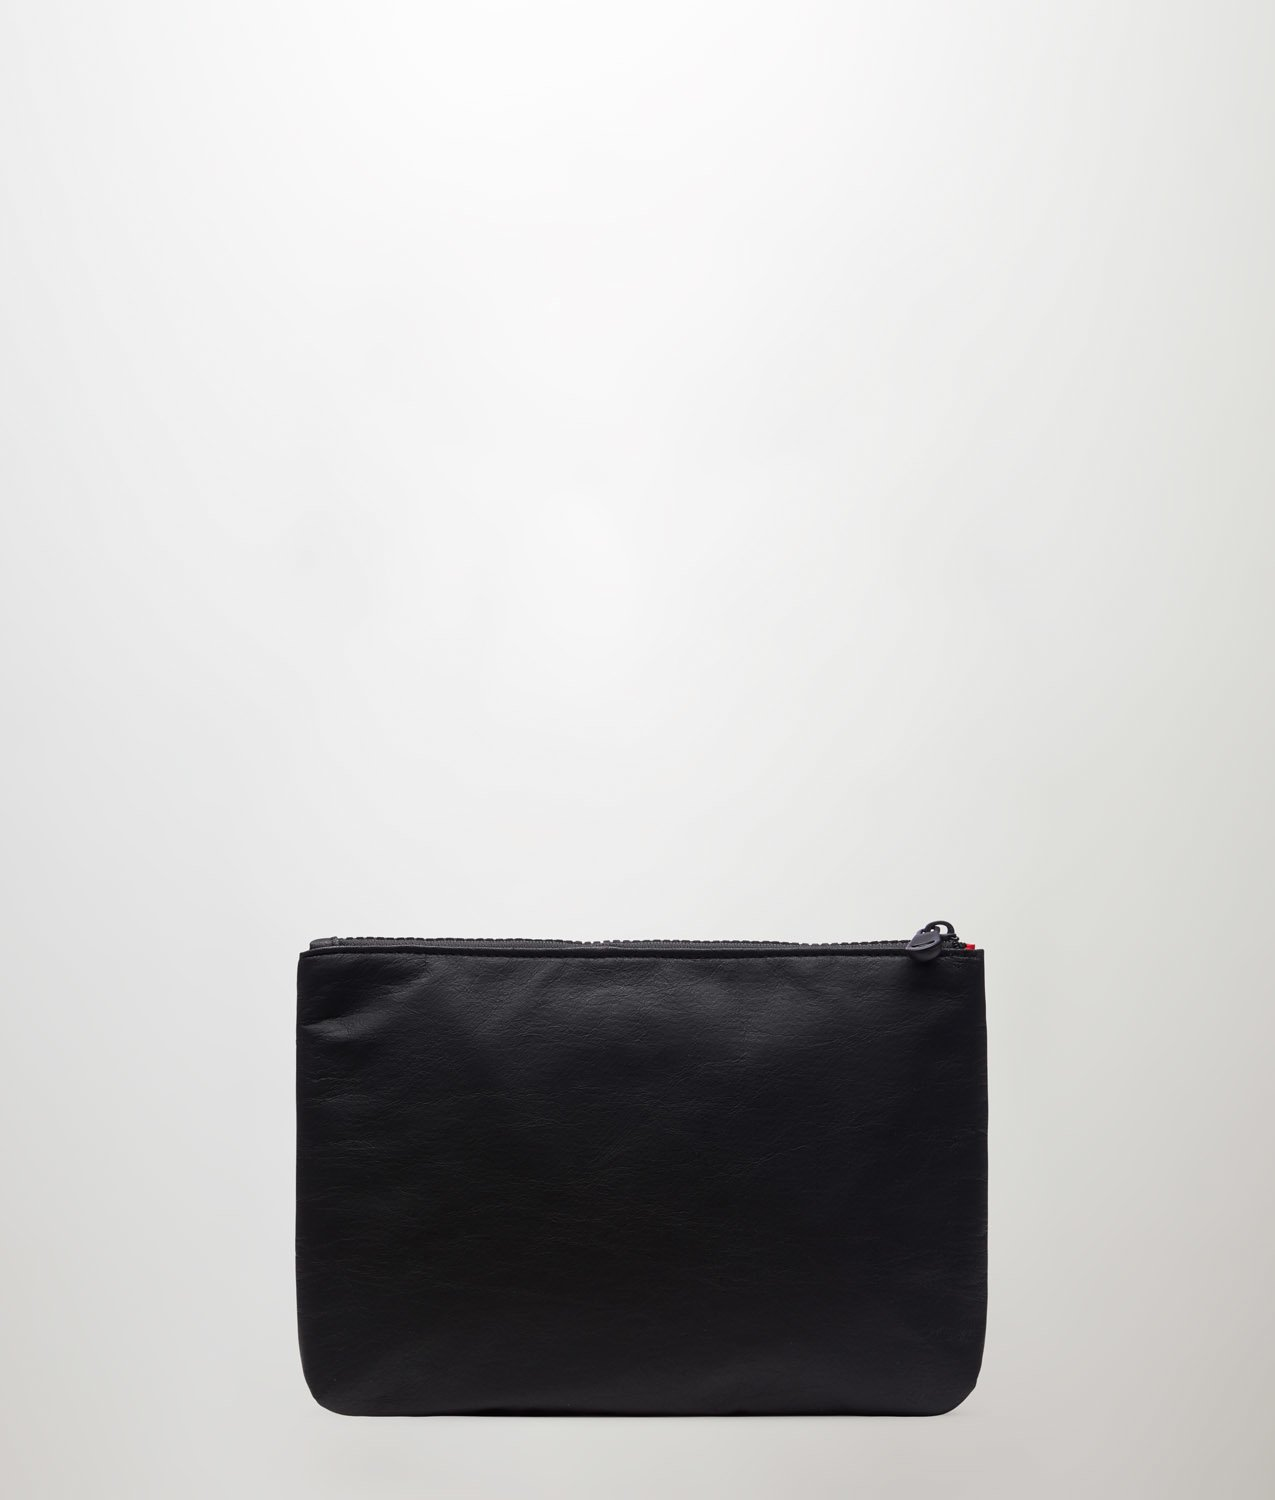 WHITNEY FLAT POUCH